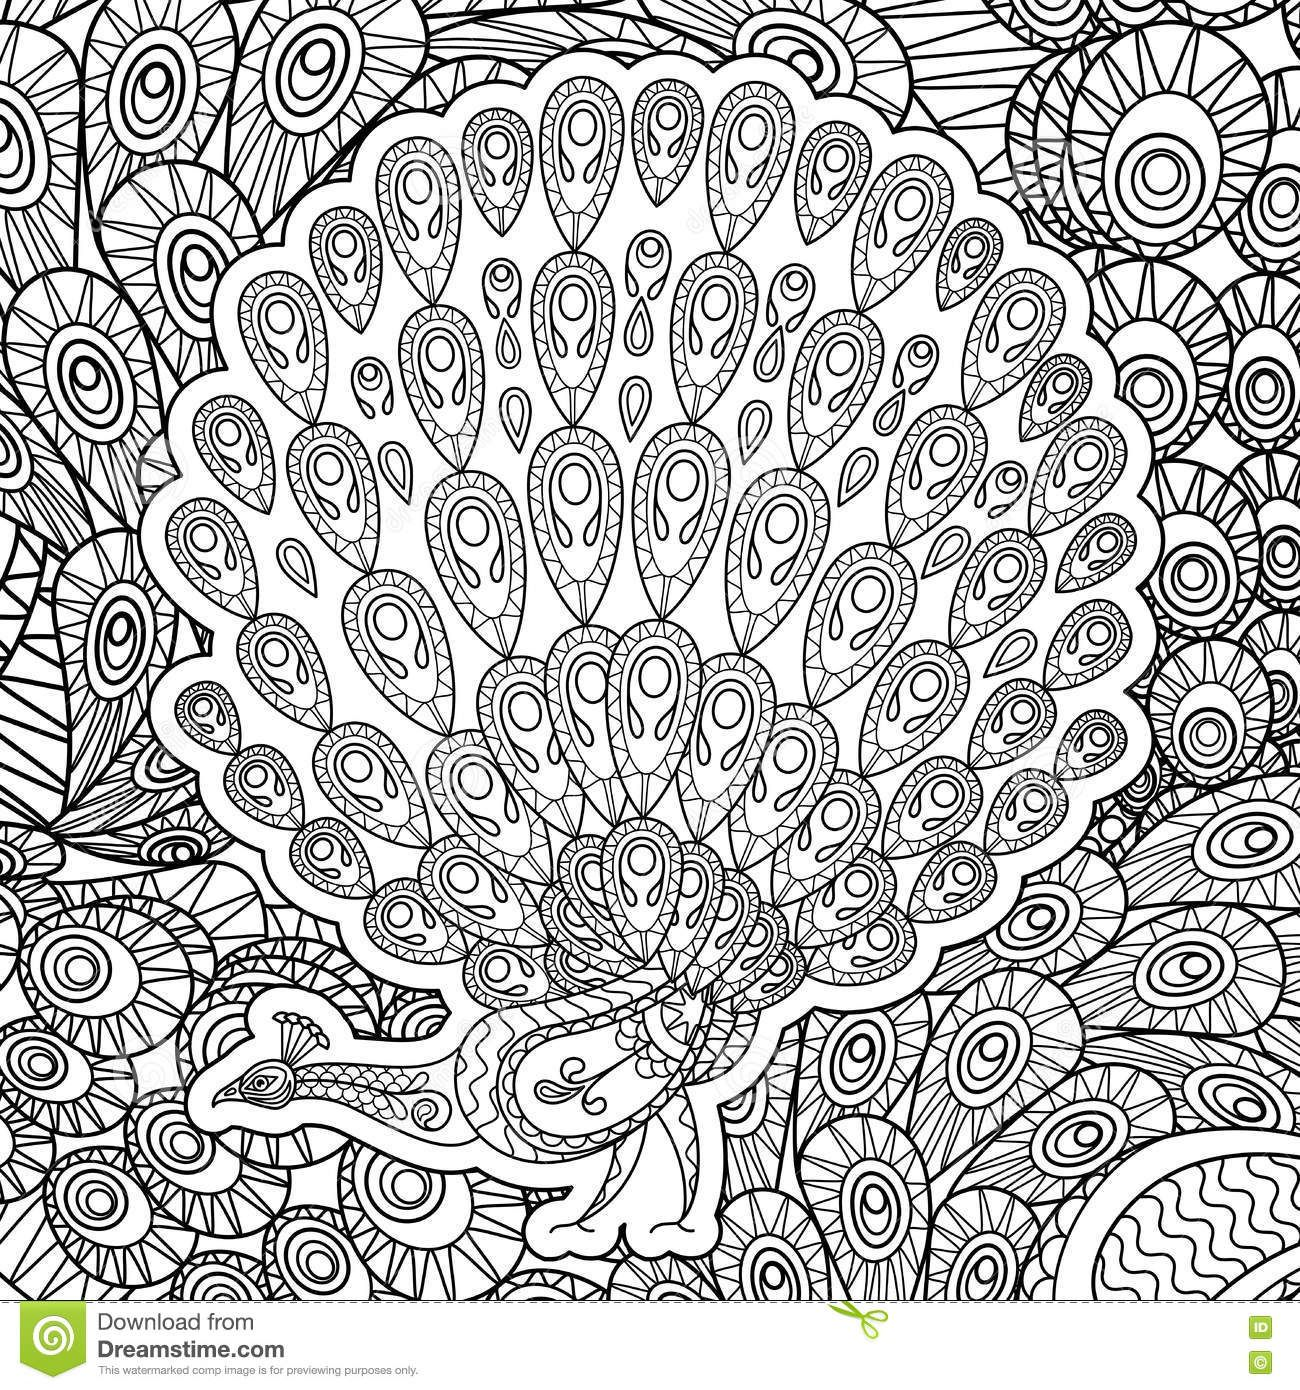 Coloring Page For Adults With Peacock Stock Vector - Image: 79142159 ...